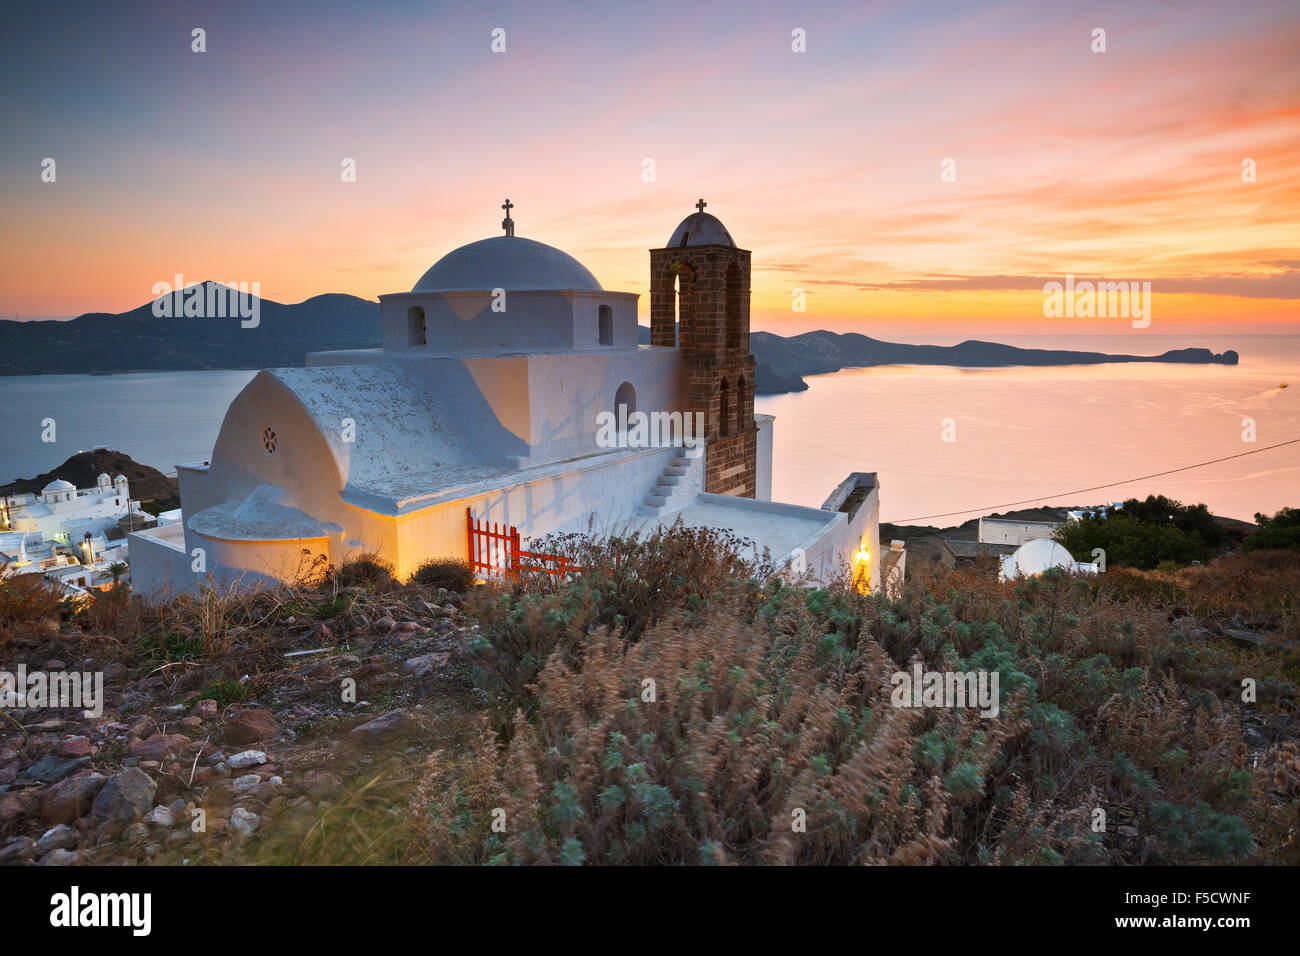 Church above Plaka village, Milos island, Greece. - Stock Image